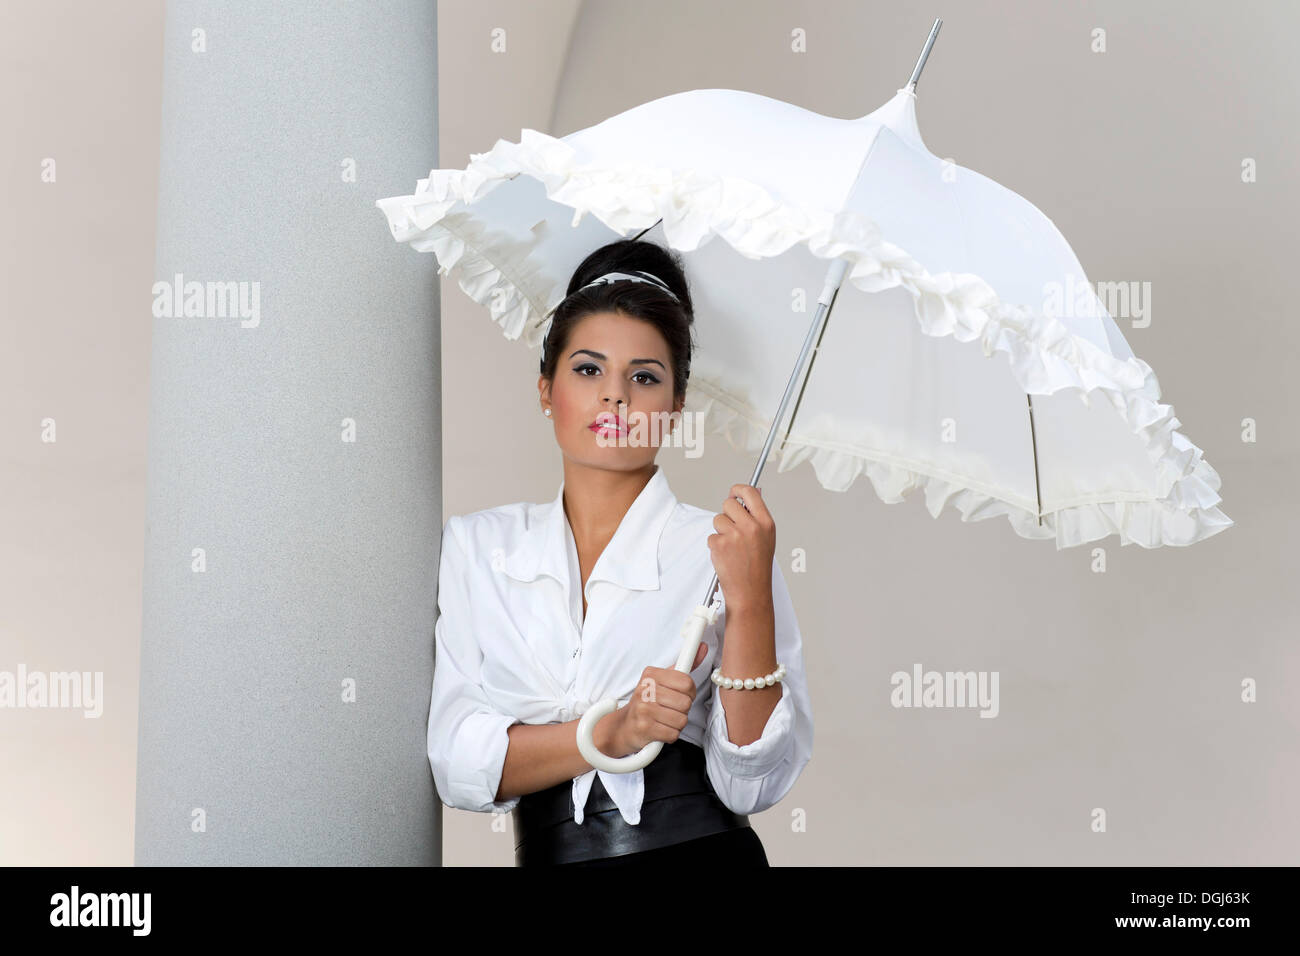 a01a9b7b7 Young woman with an updo hairstyle holding a white umbrella and wearing a white  shirt